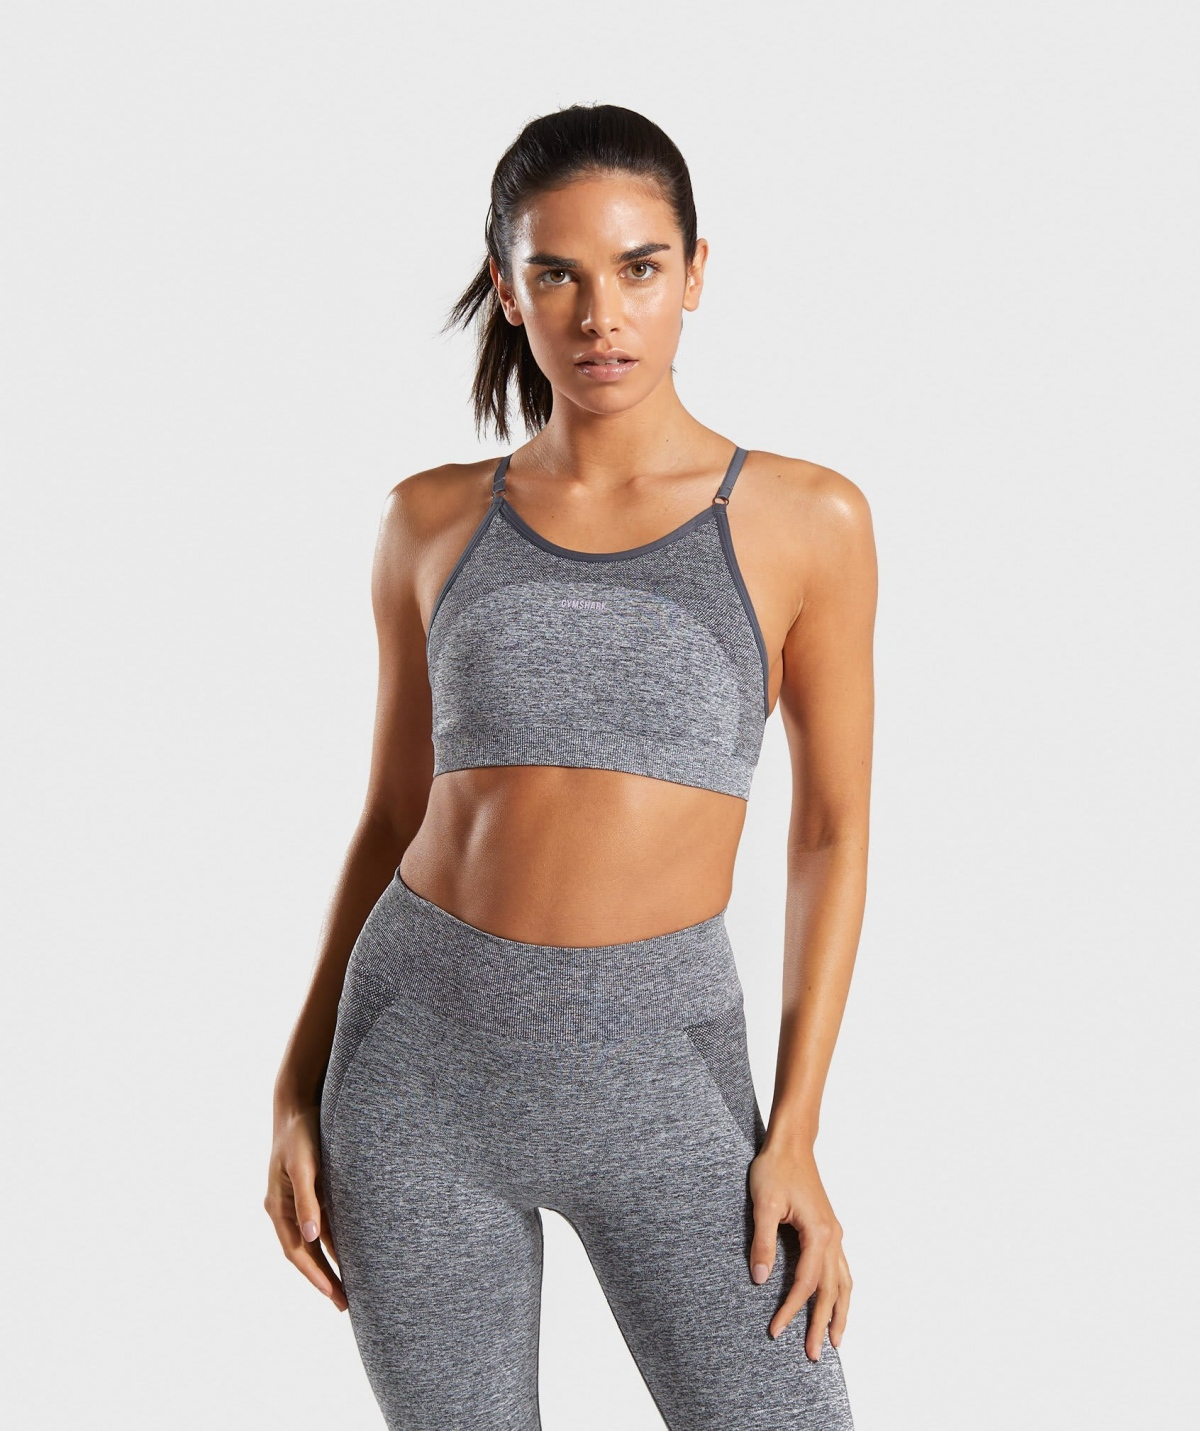 FLEX STRAPPY SPORTS BRA by GYMSHARK, available on gymshark.com for $45 Kendall Jenner Top Exact Product